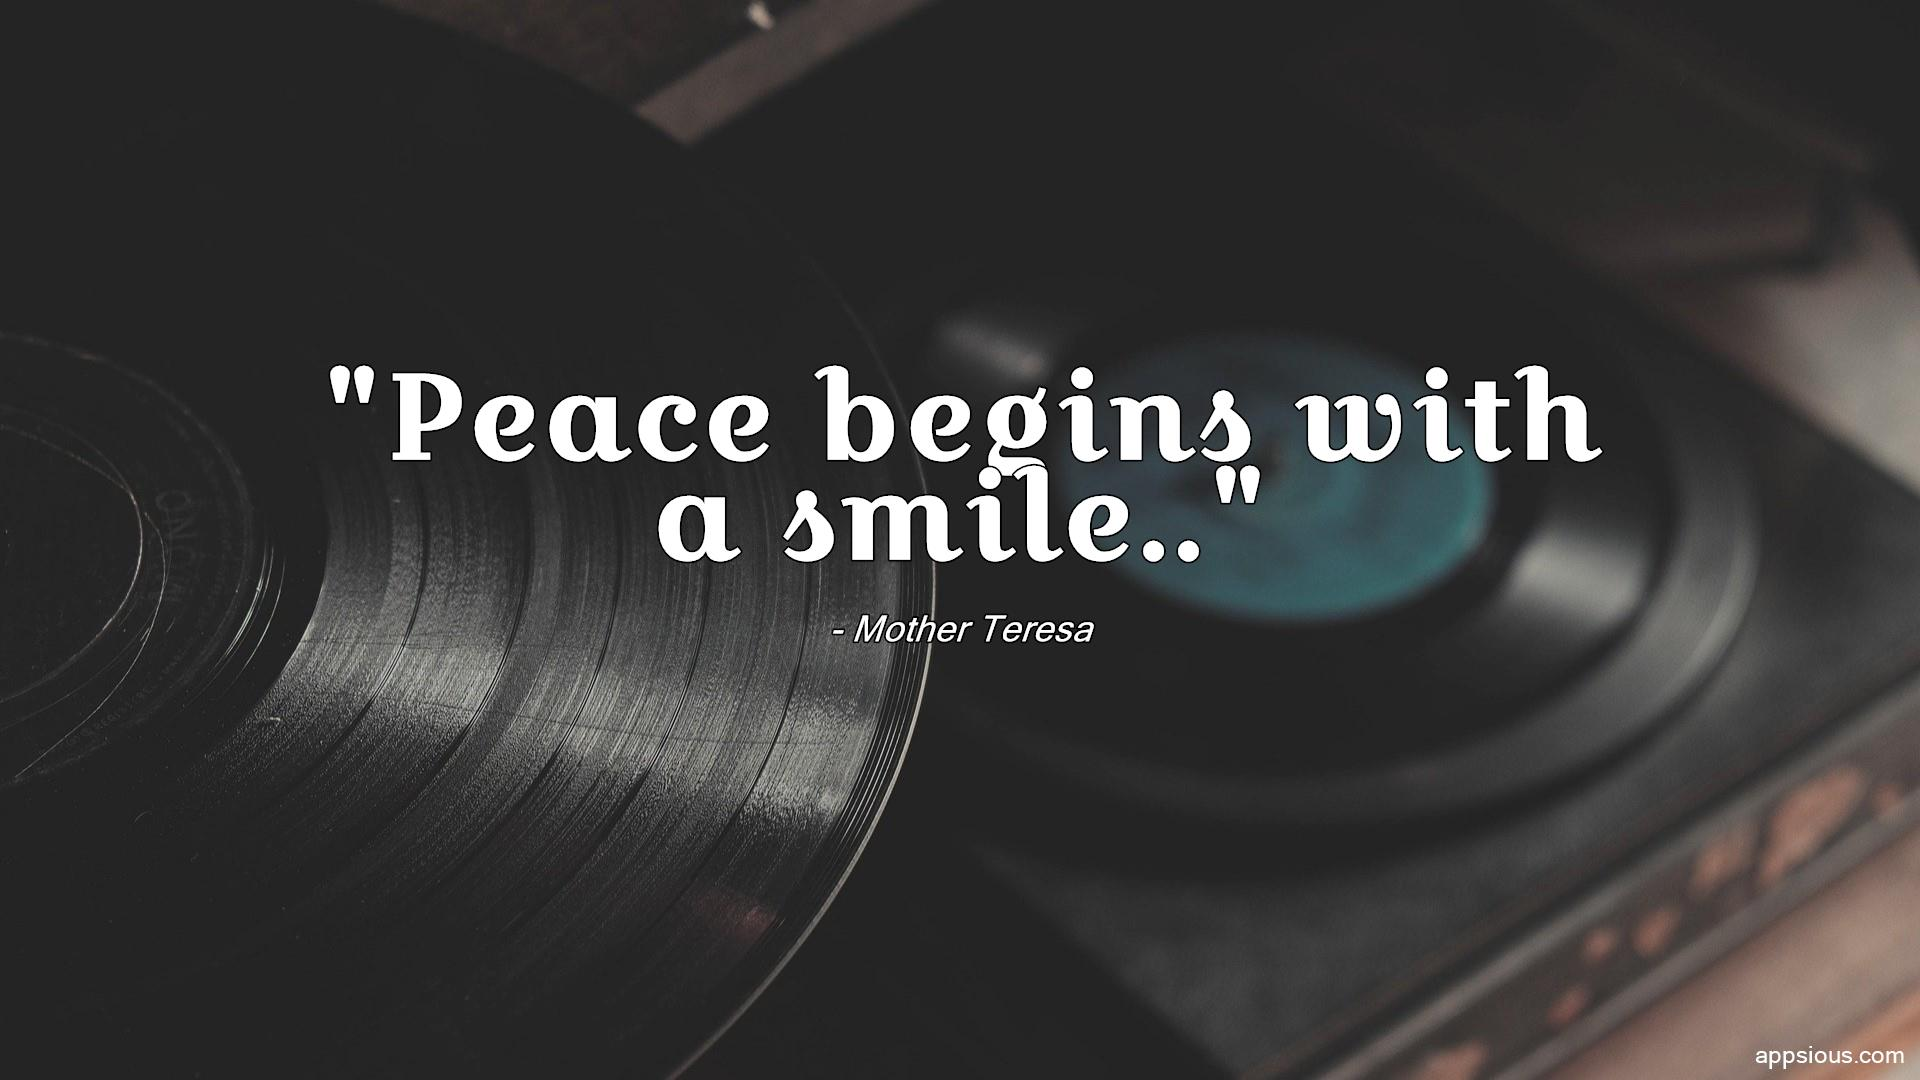 Peace begins with a smile..